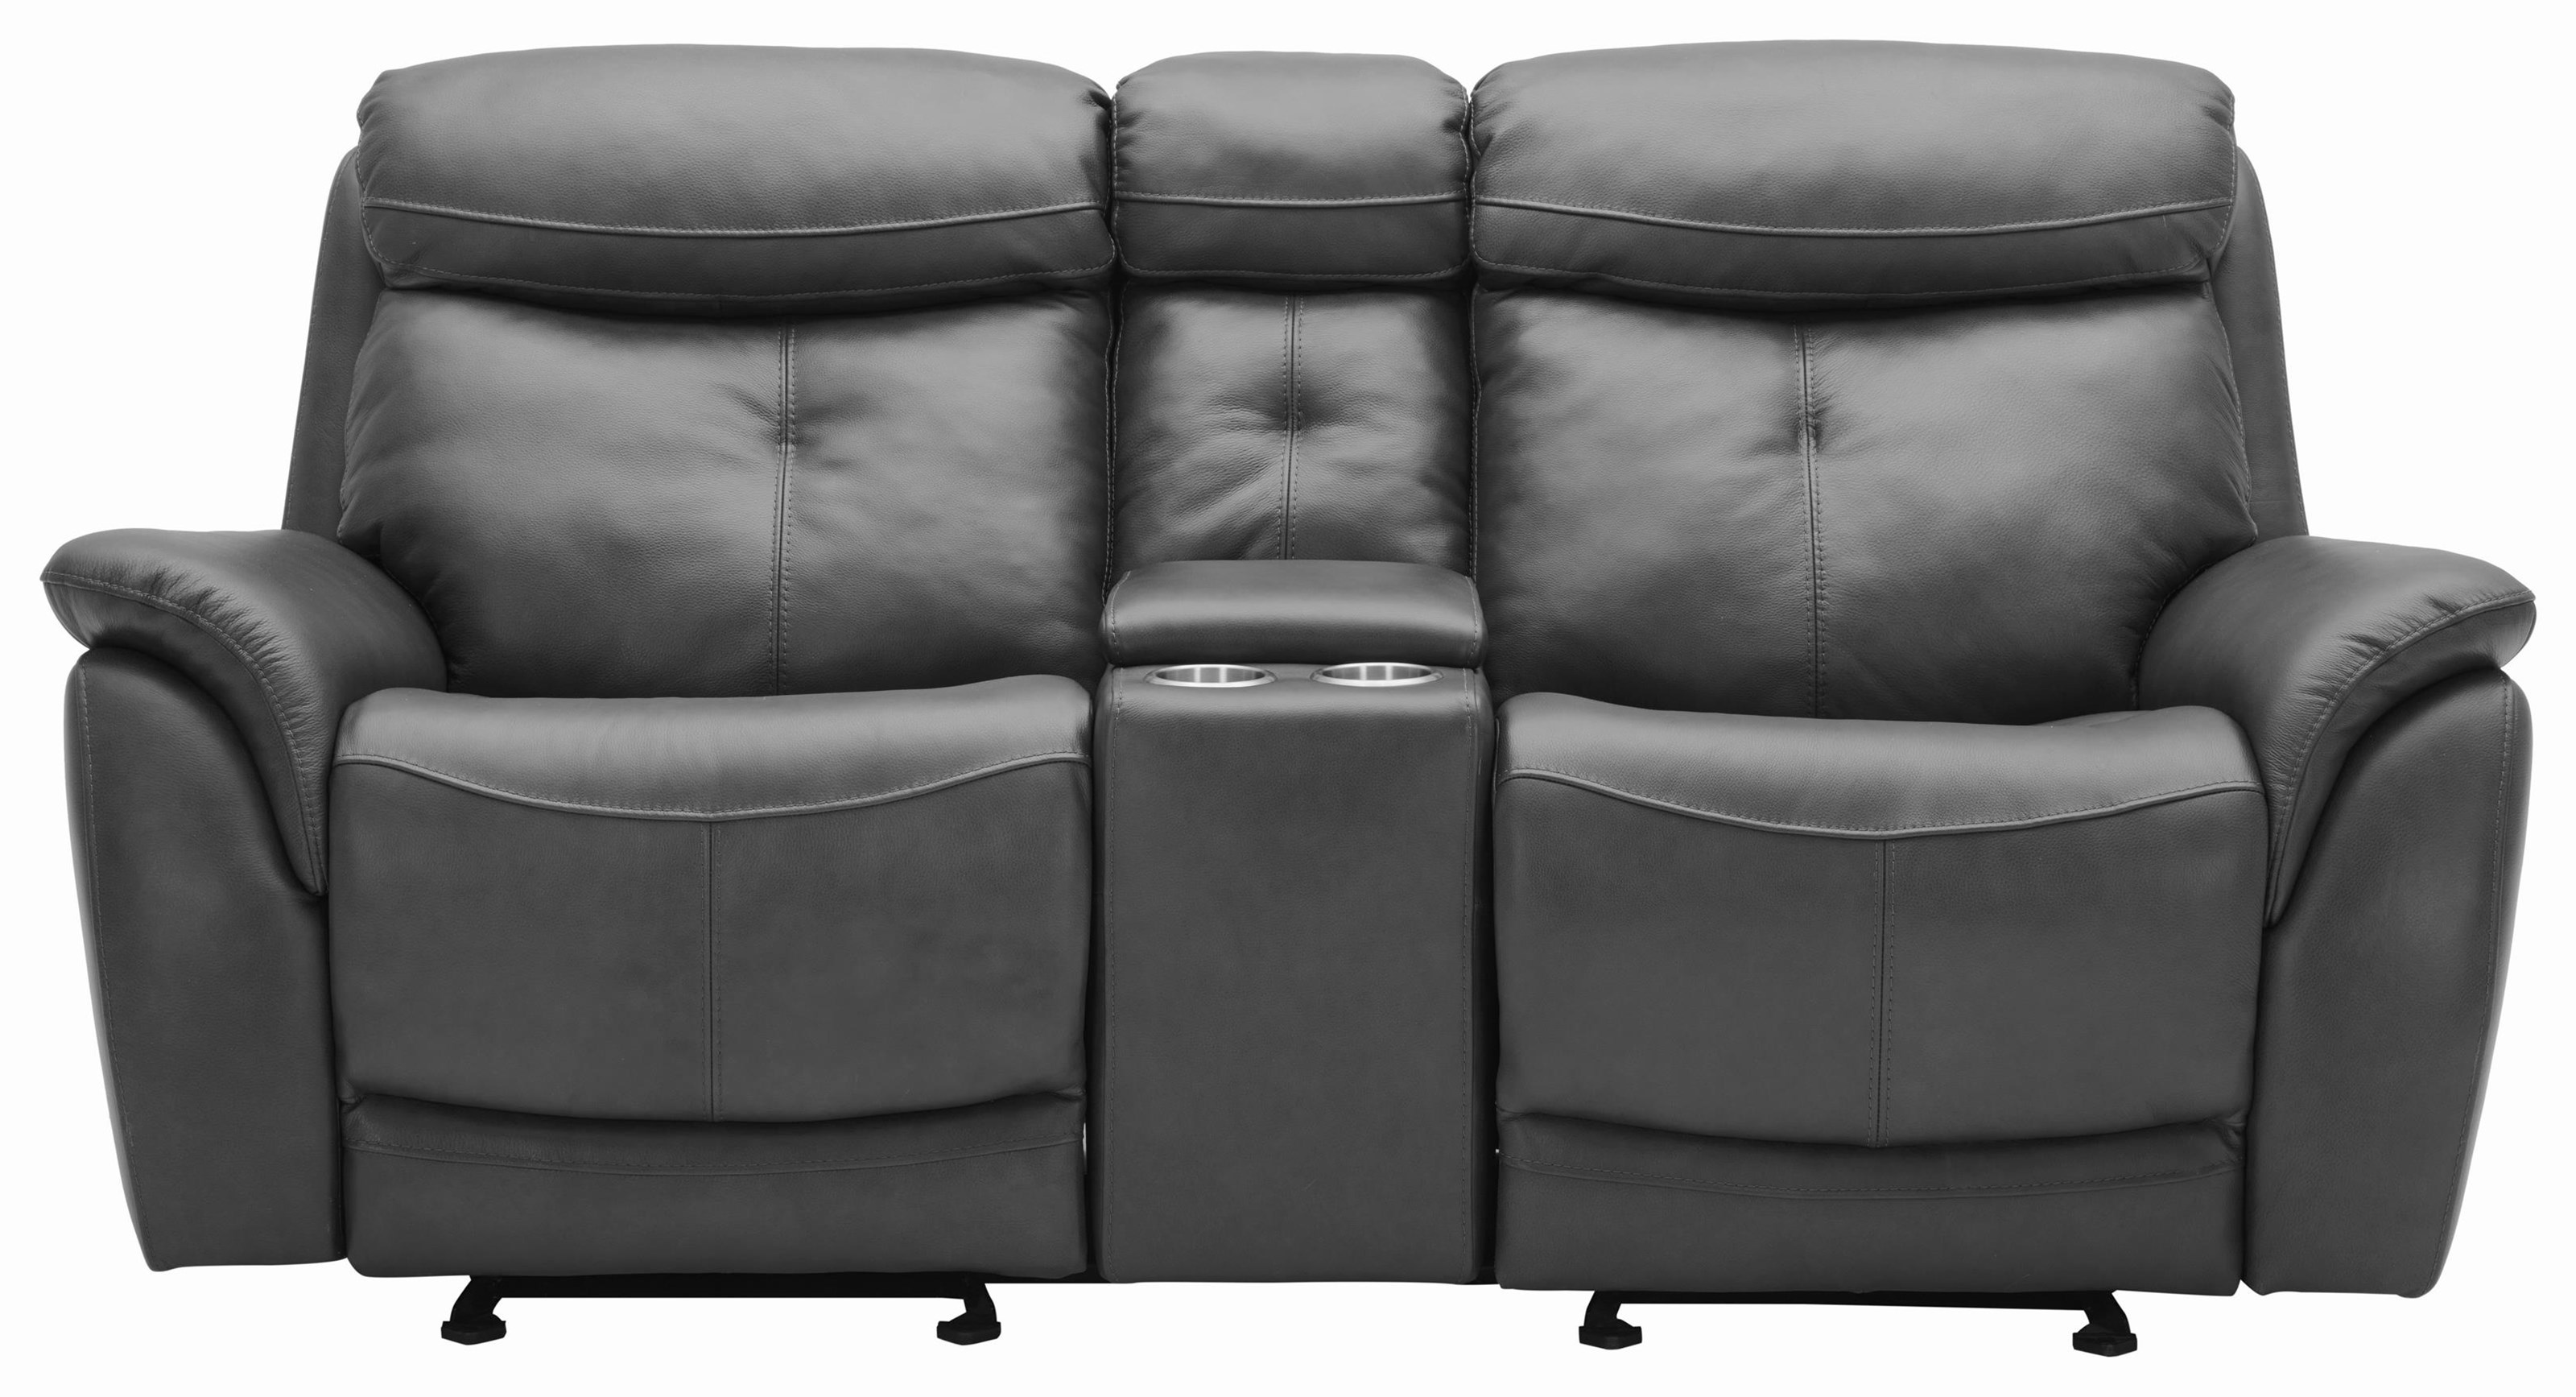 Power Reclining Leather Loveseat w/ Power Headrest and Console